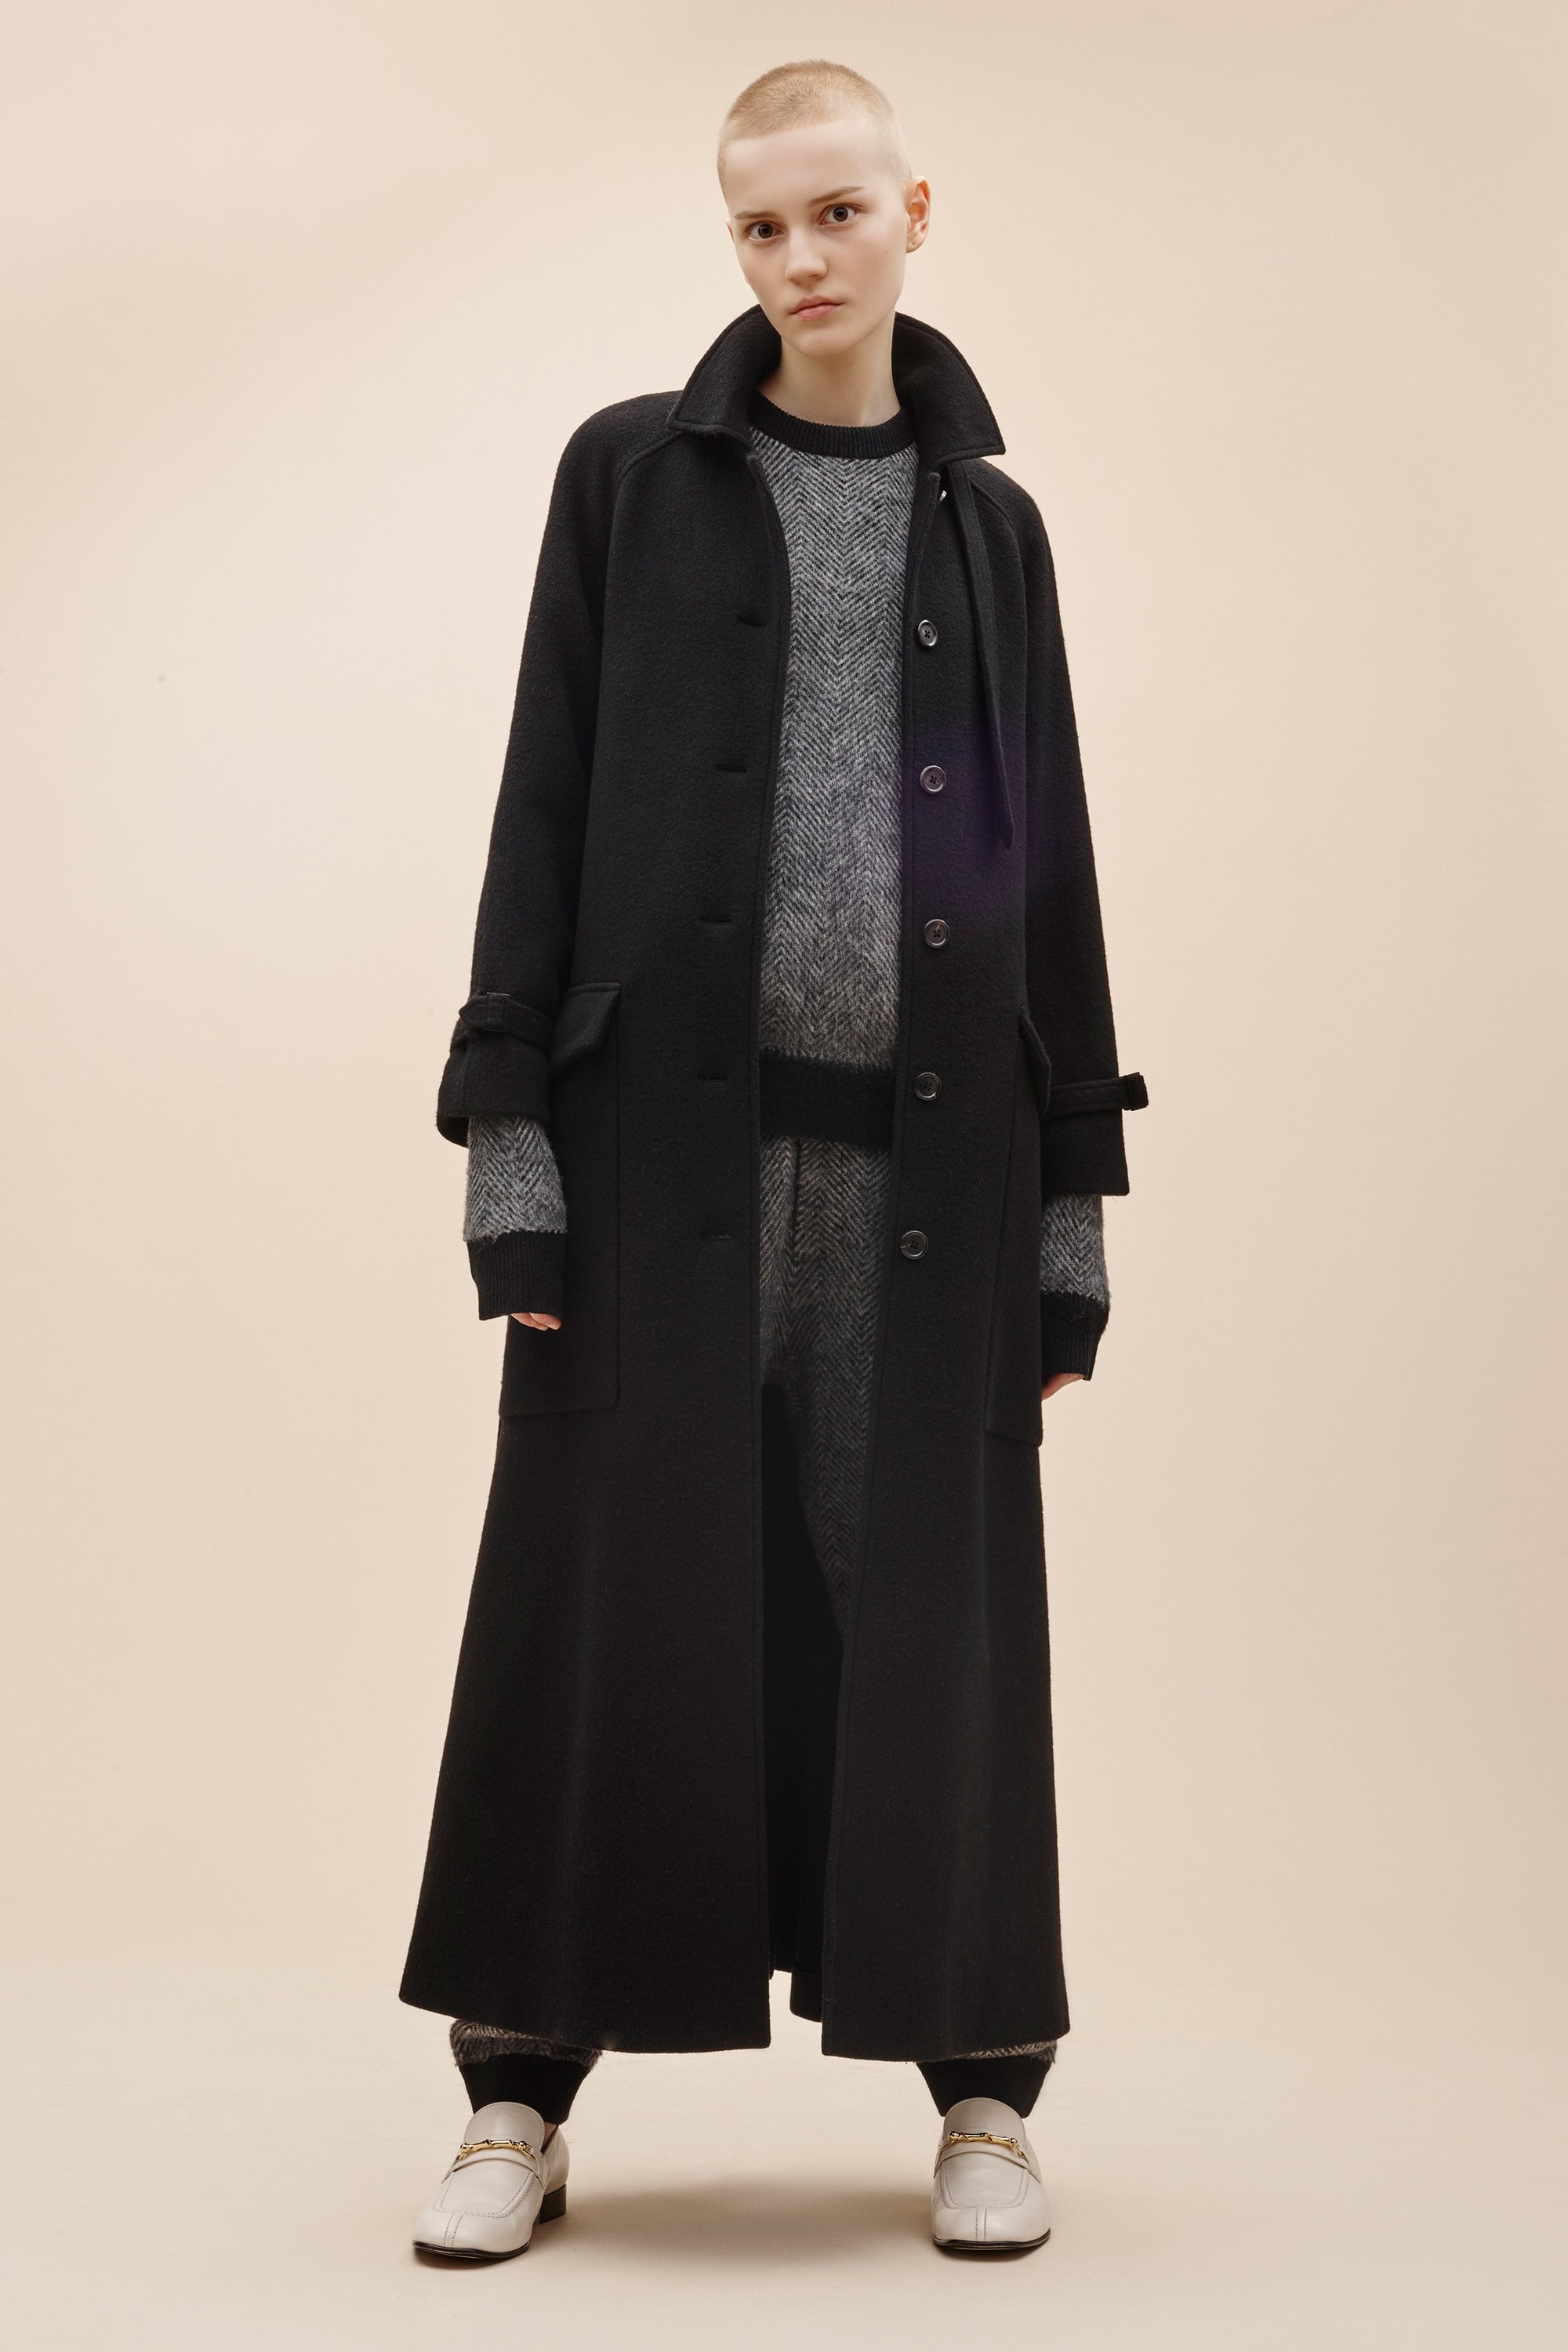 joseph-pre-fall-2016-lookbook-23.jpg